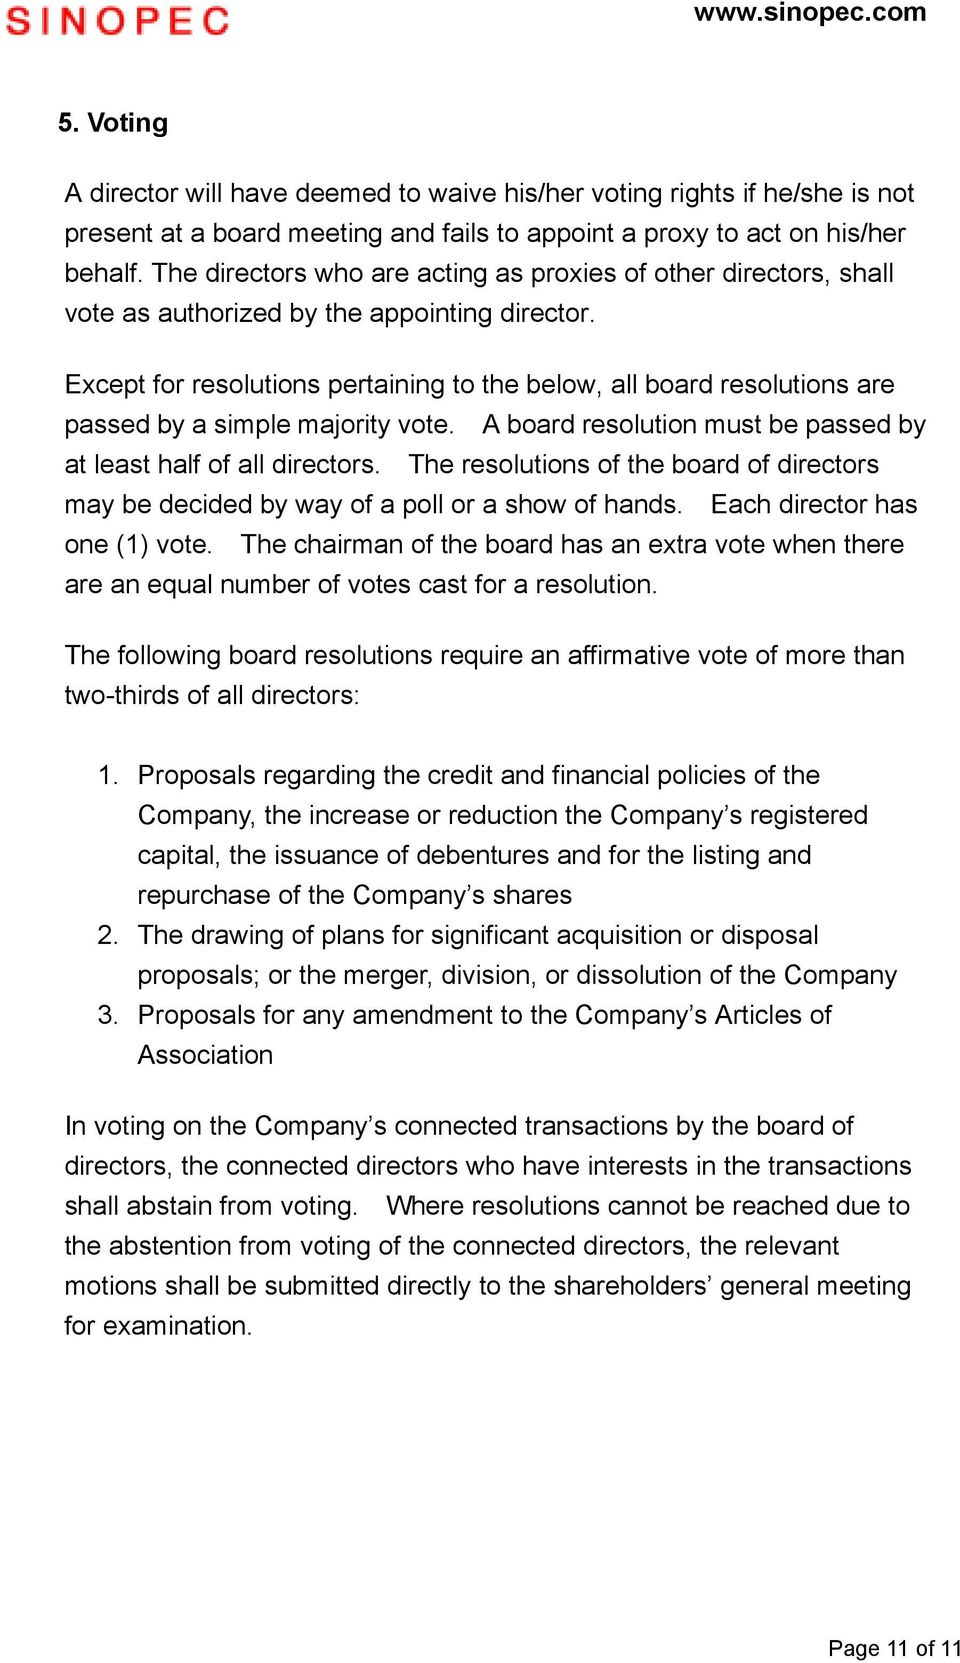 Except for resolutions pertaining to the below, all board resolutions are passed by a simple majority vote. A board resolution must be passed by at least half of all directors.